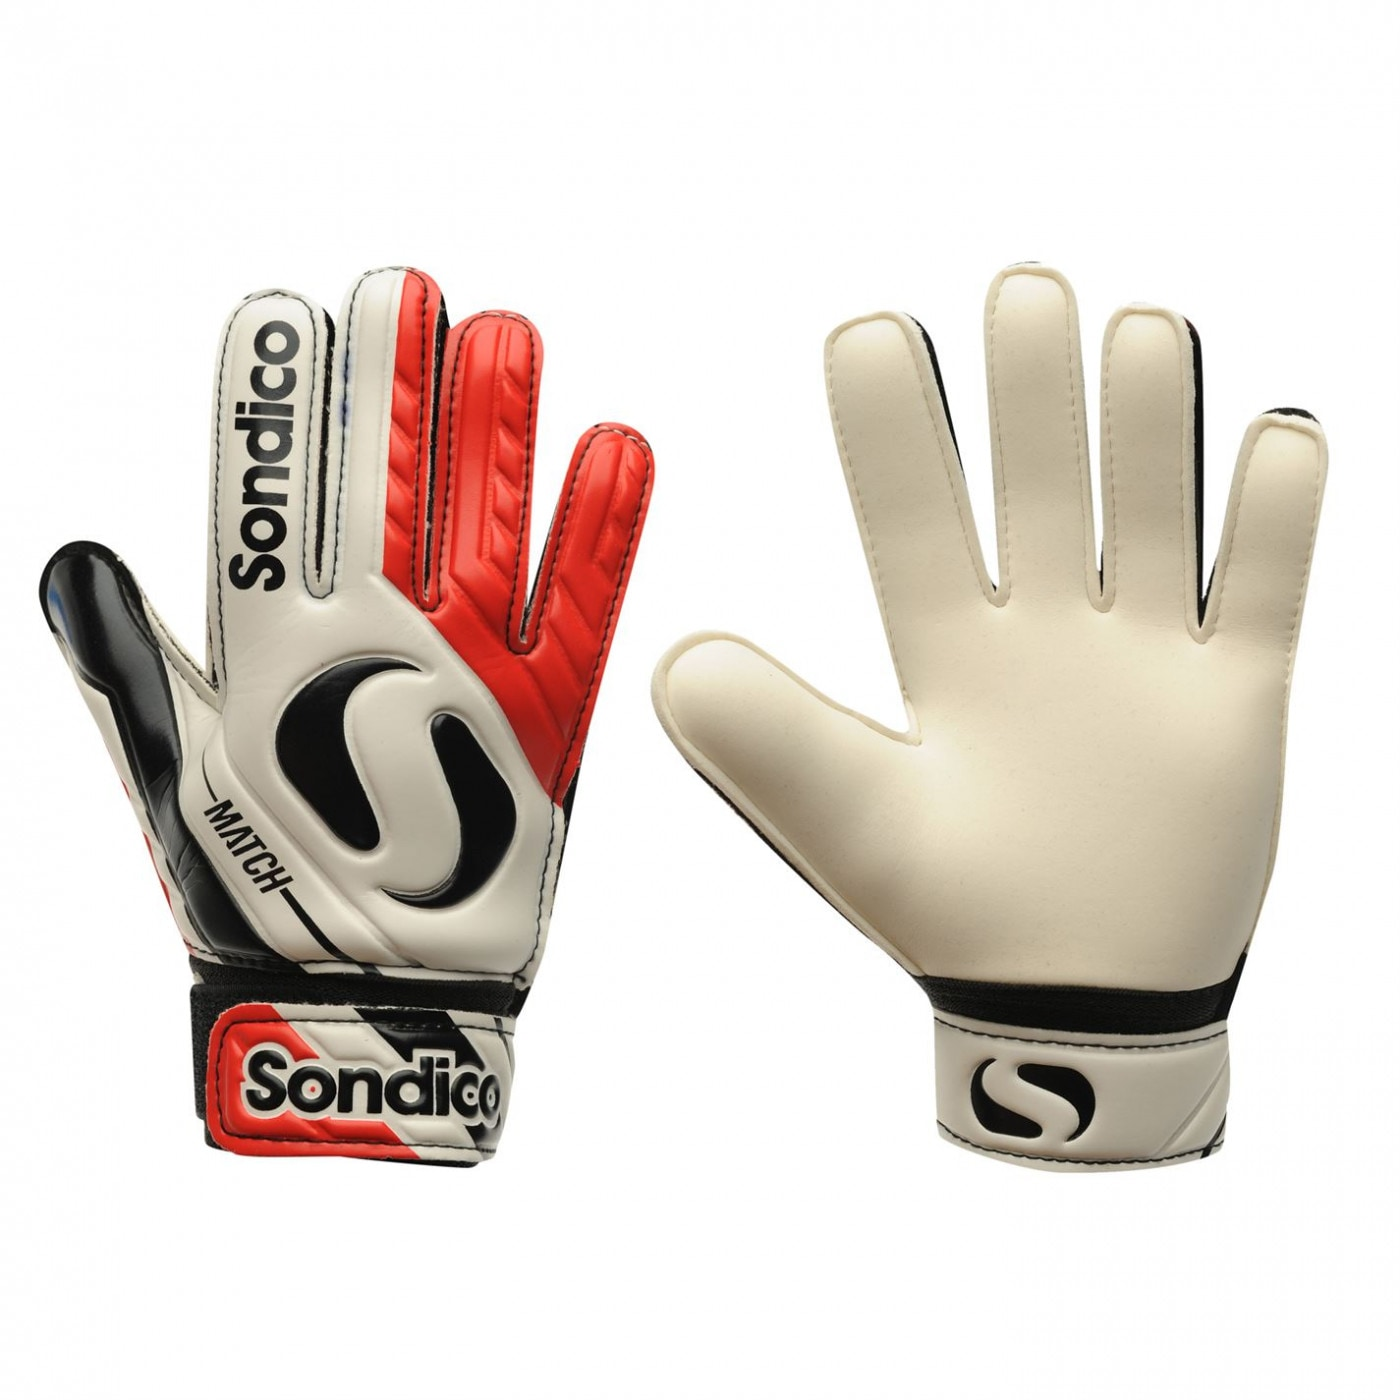 Sondico Match Junior Goalkeeper Gloves